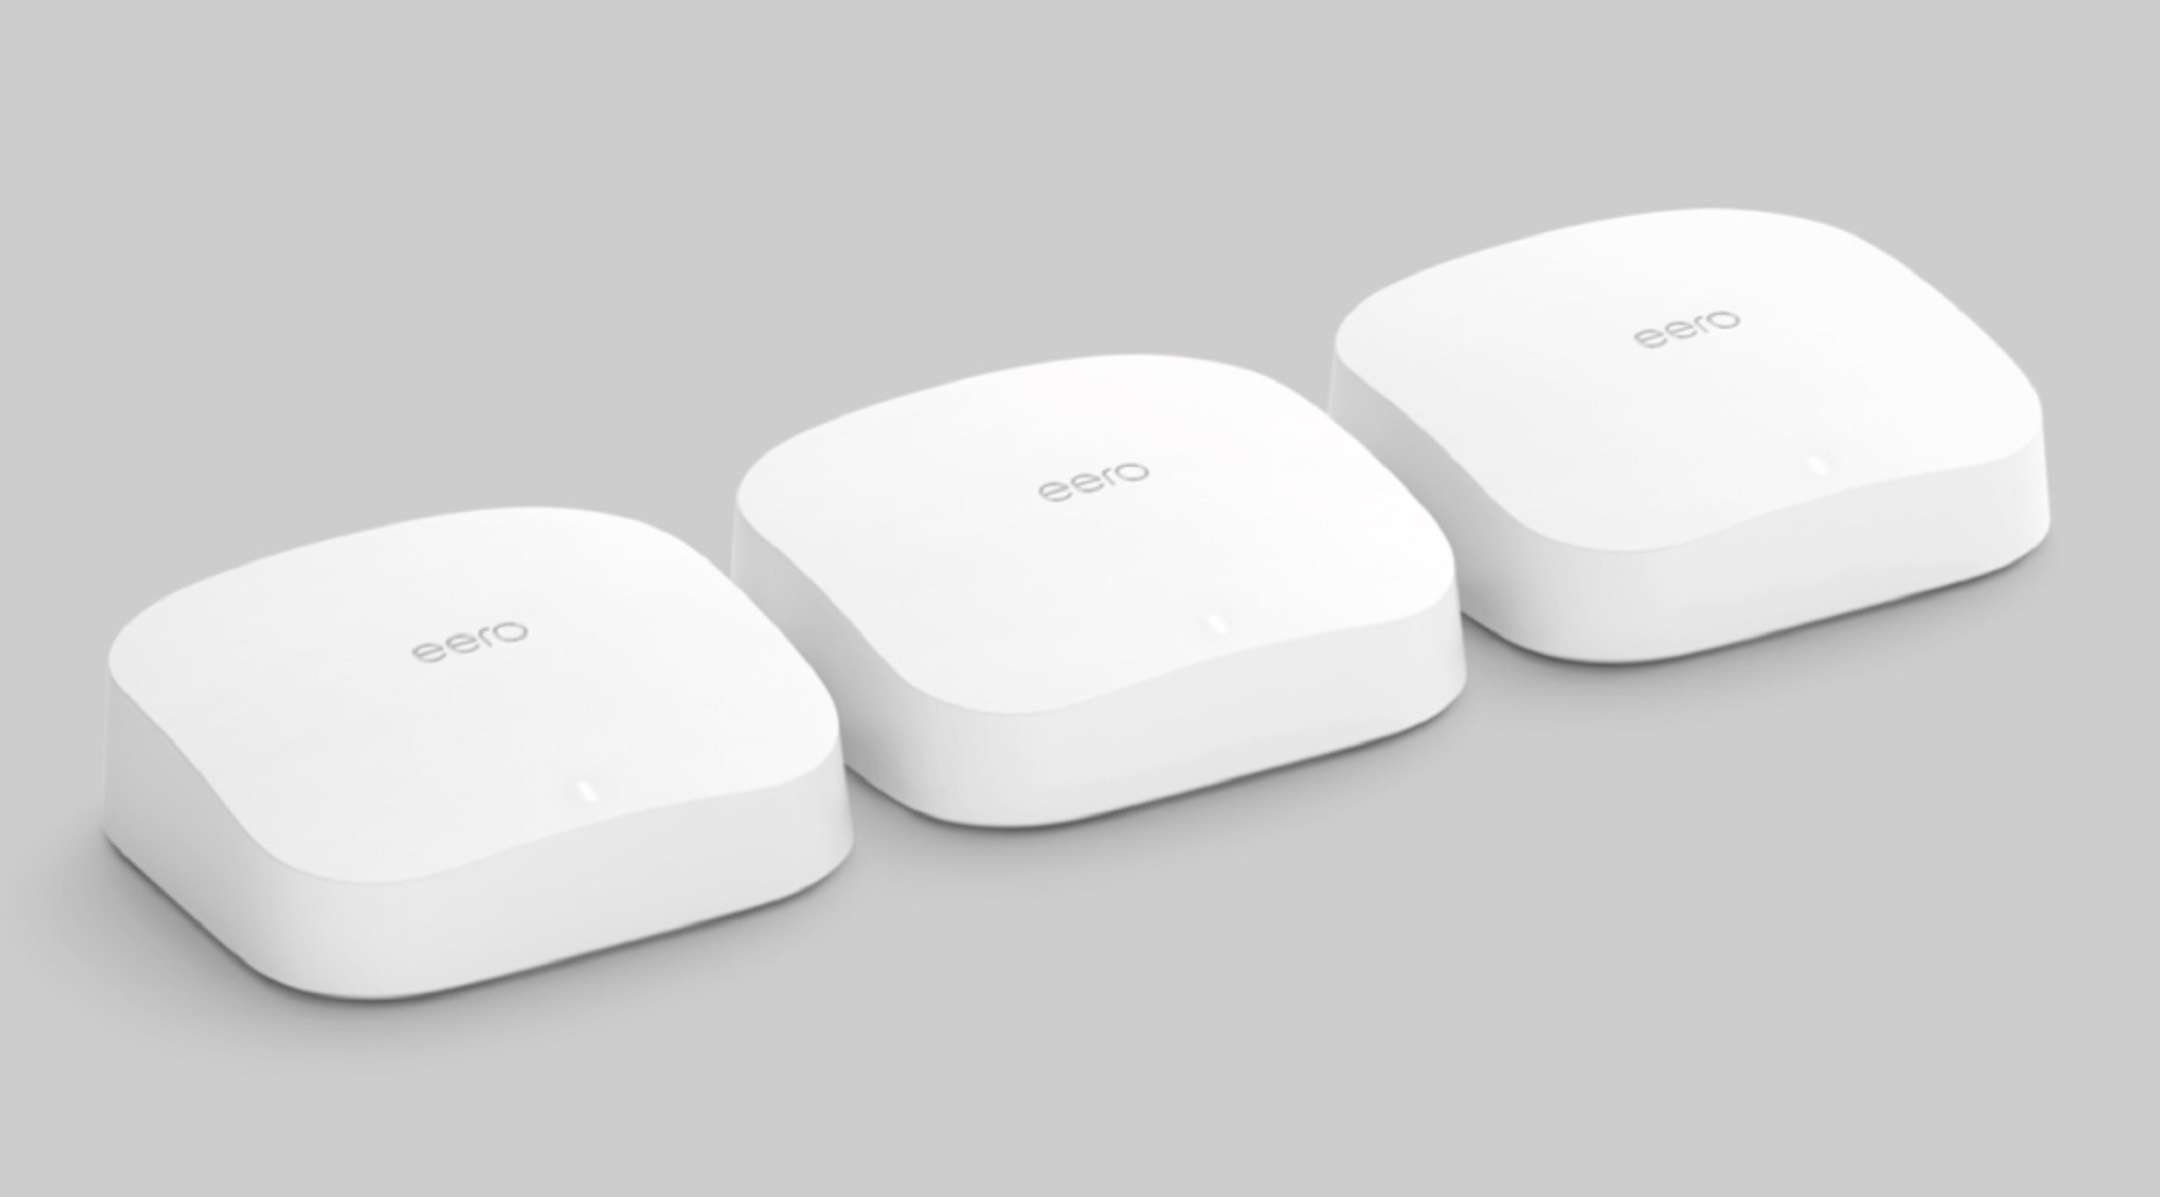 Amazon eero: one or three? No problem, both kits are on offer!